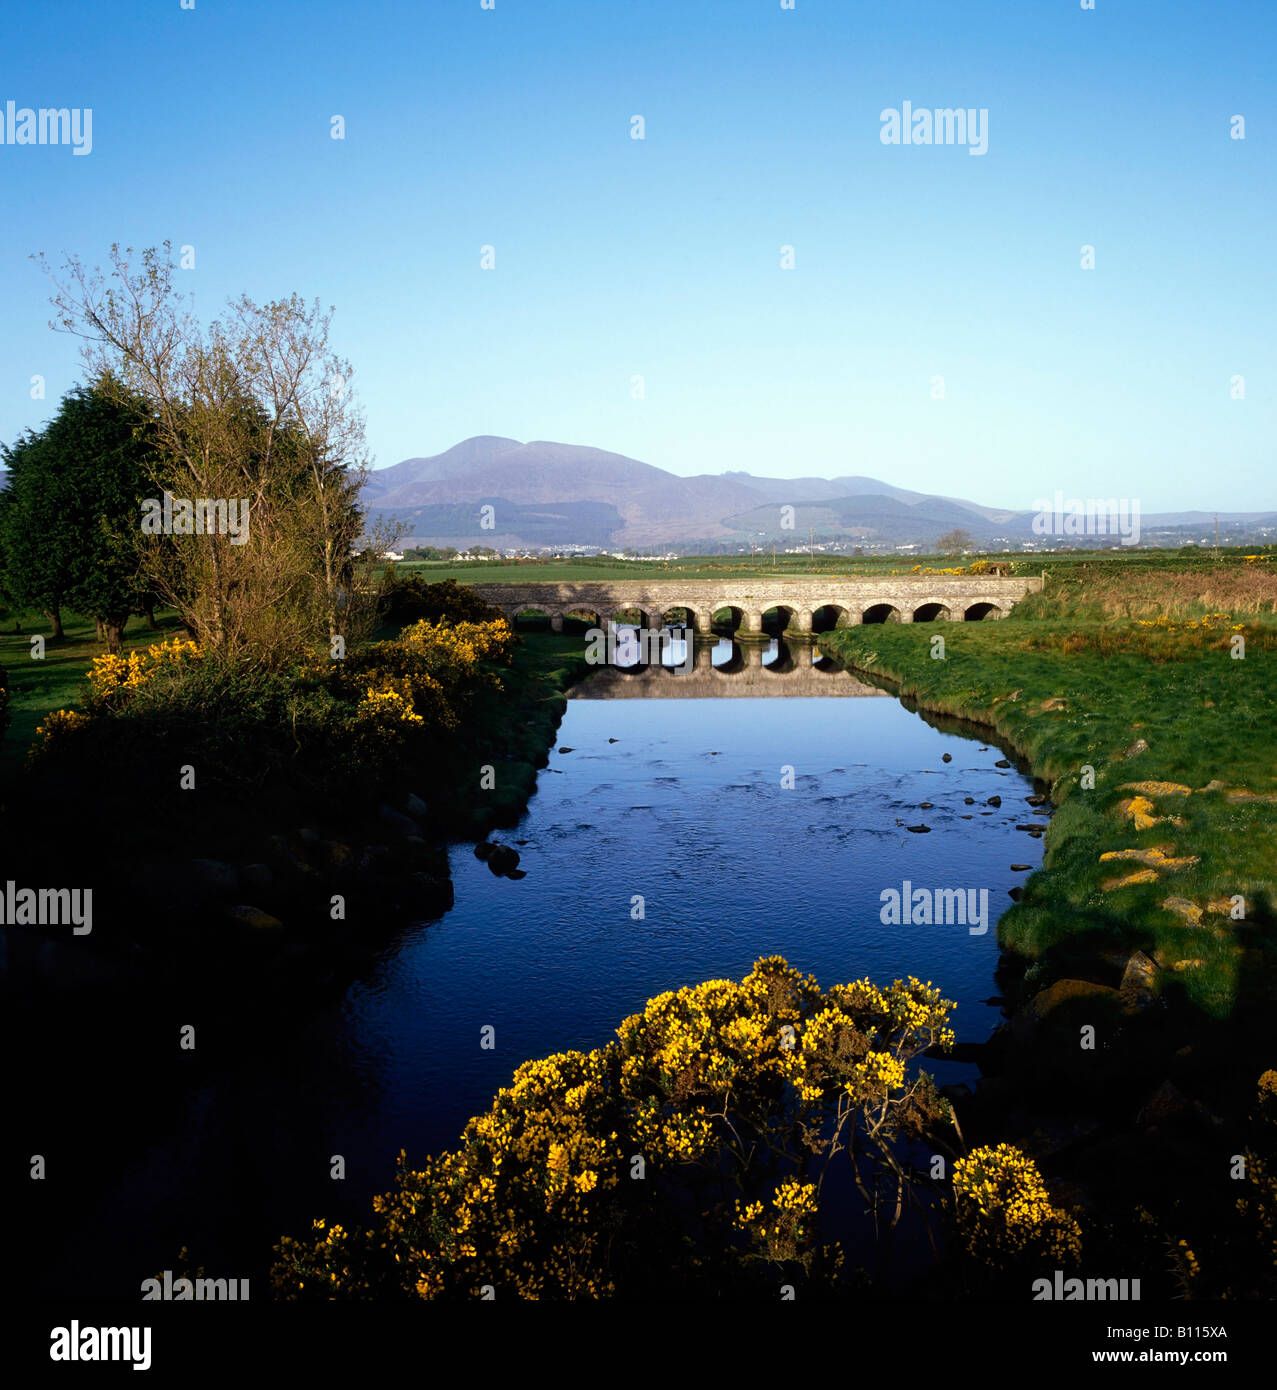 Co Down, Newcastle, 12 Arches, Ireland - Stock Image